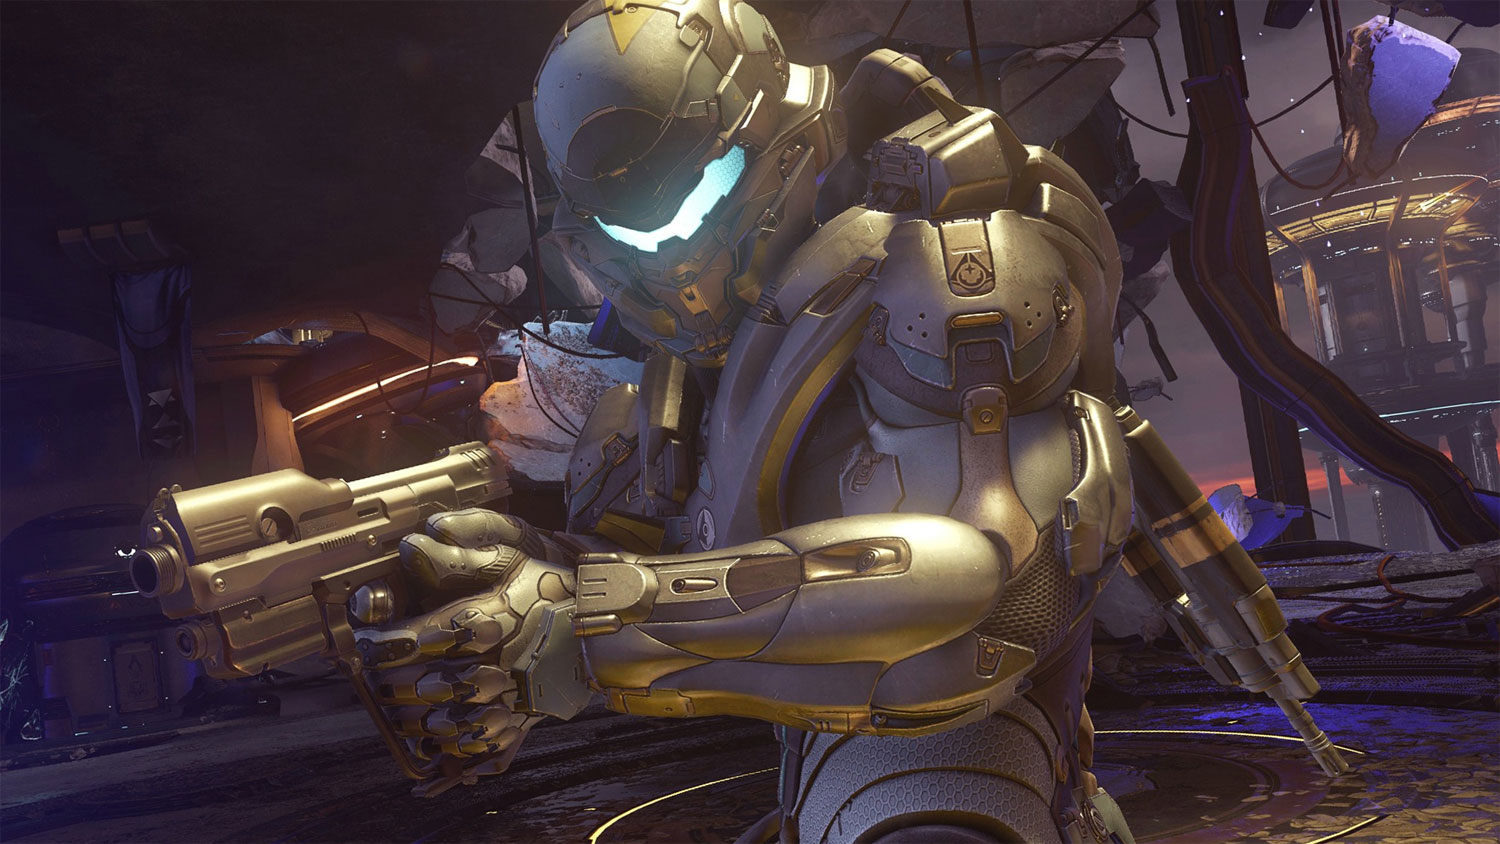 Halo 5 Guardians Gets Two New Campaign Focused Videos Vg247